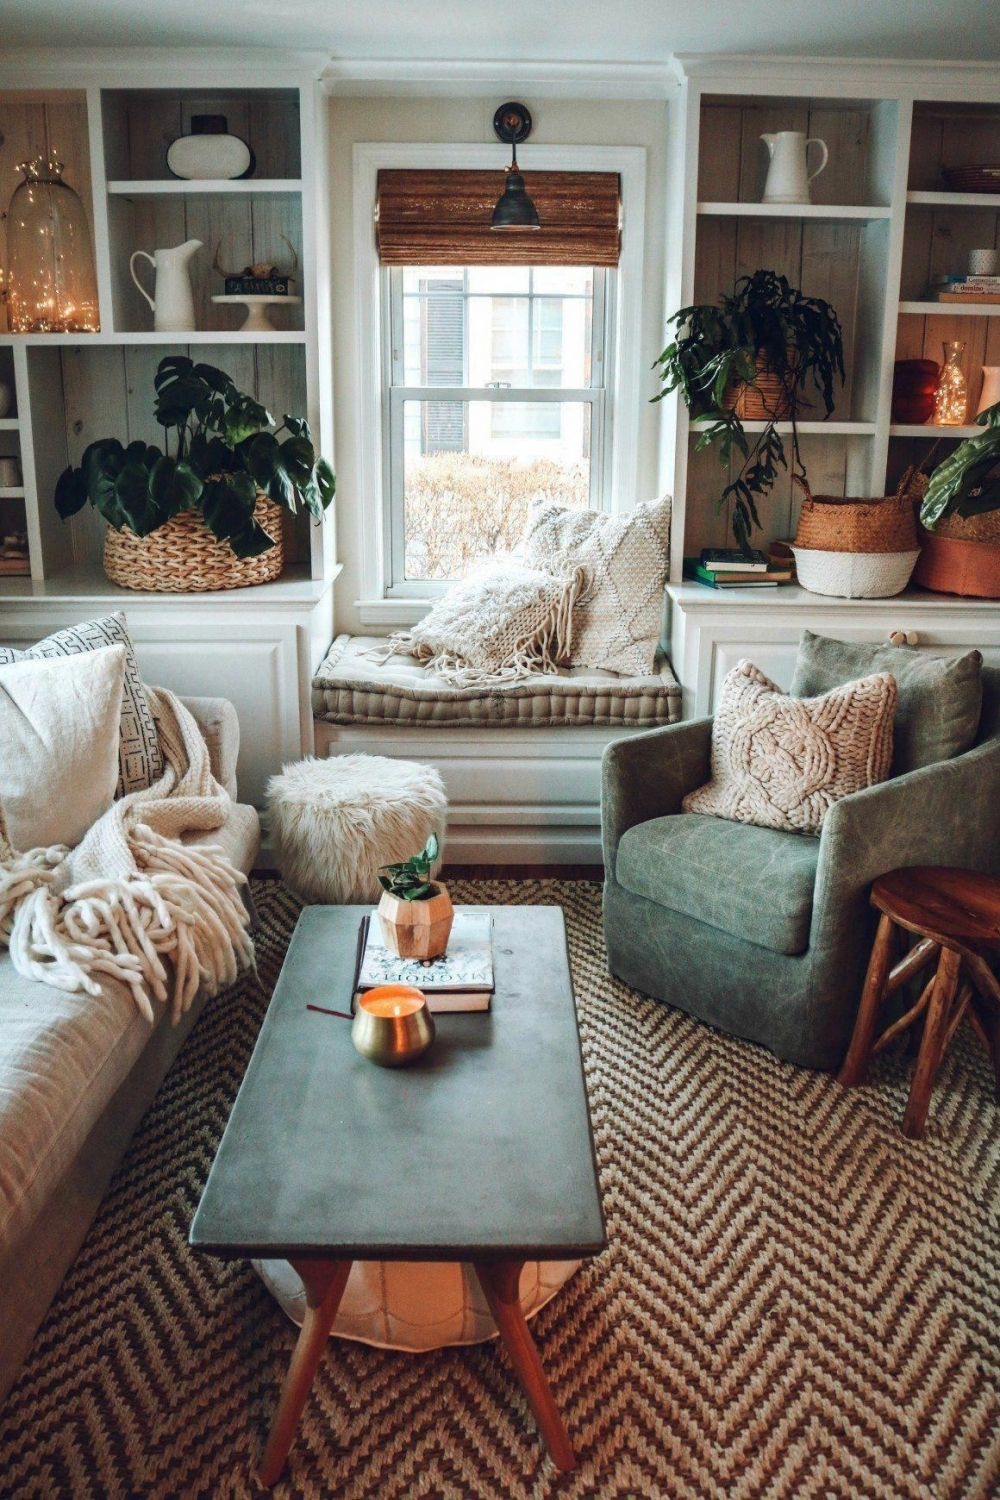 Cozy Apartment Interior Design